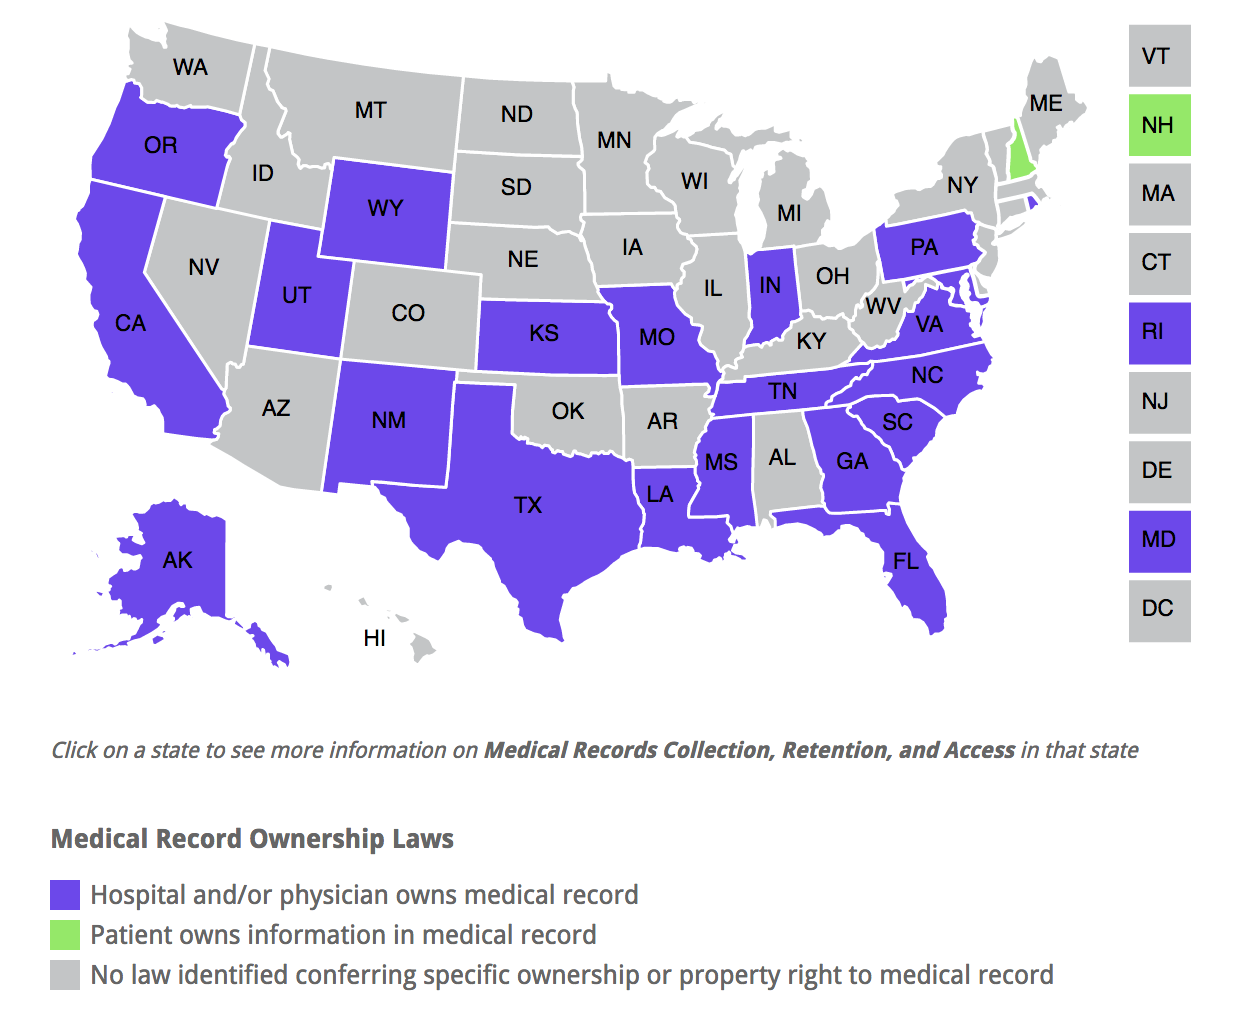 Medical Record Ownership by State